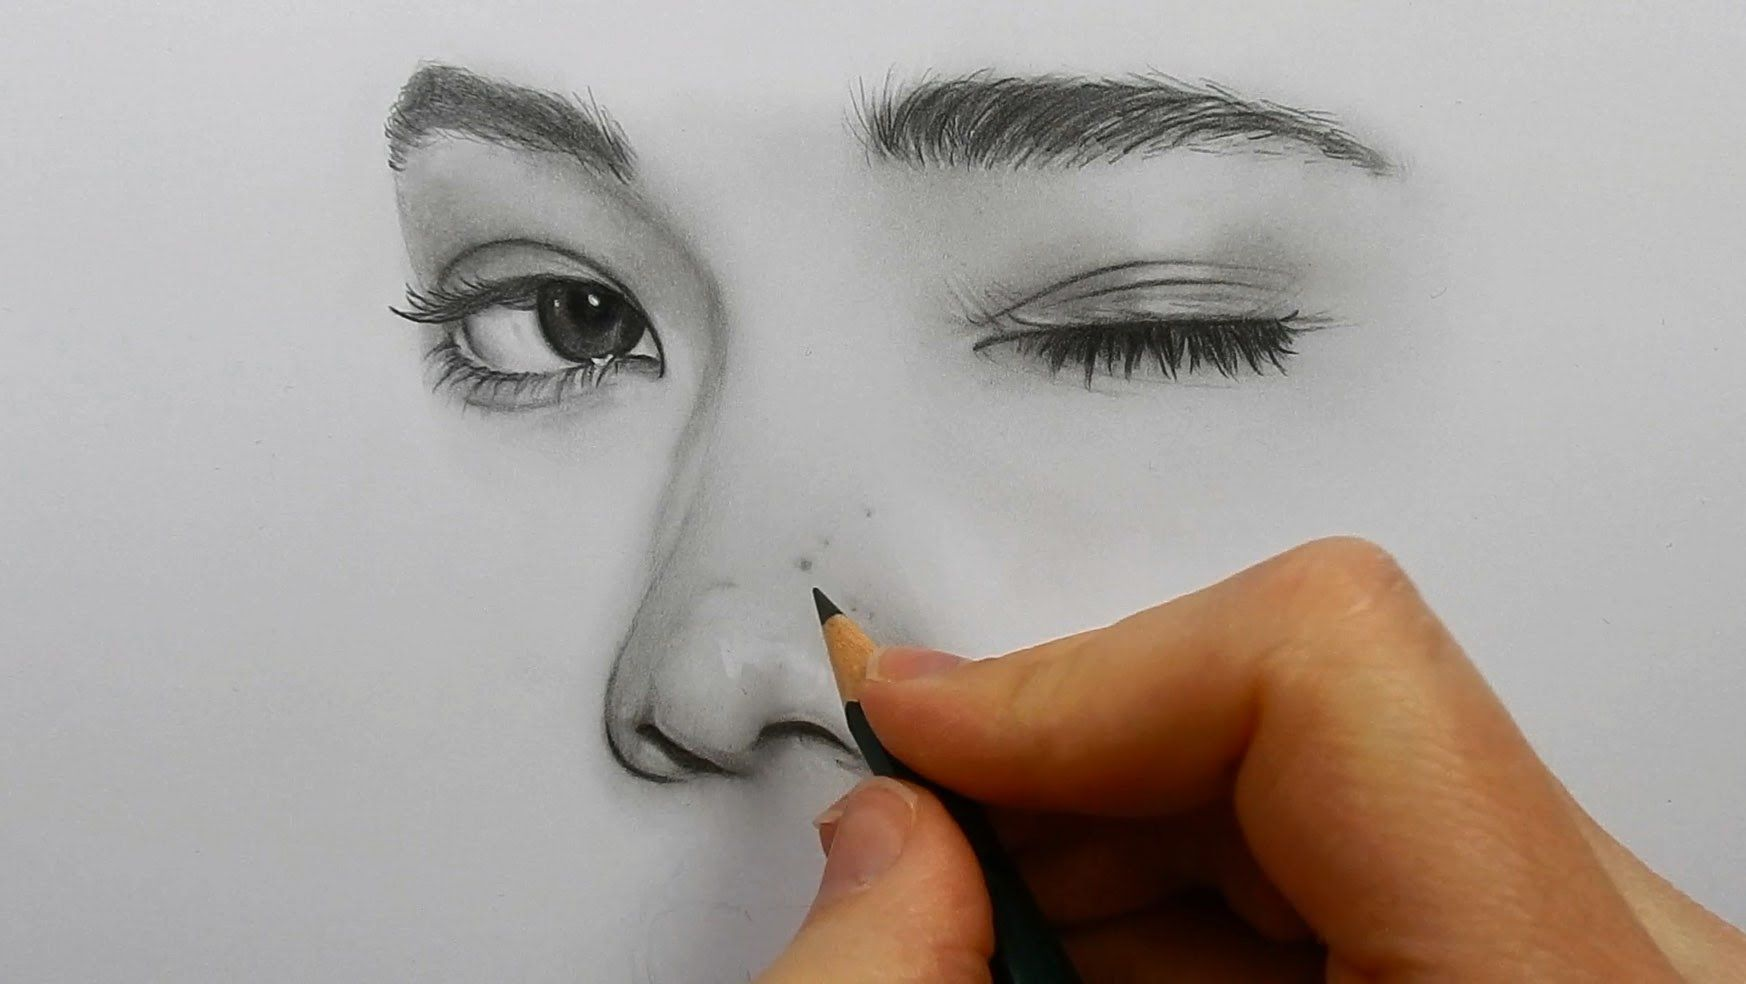 Drawing Shading And Blending A Face With Graphite Pencils